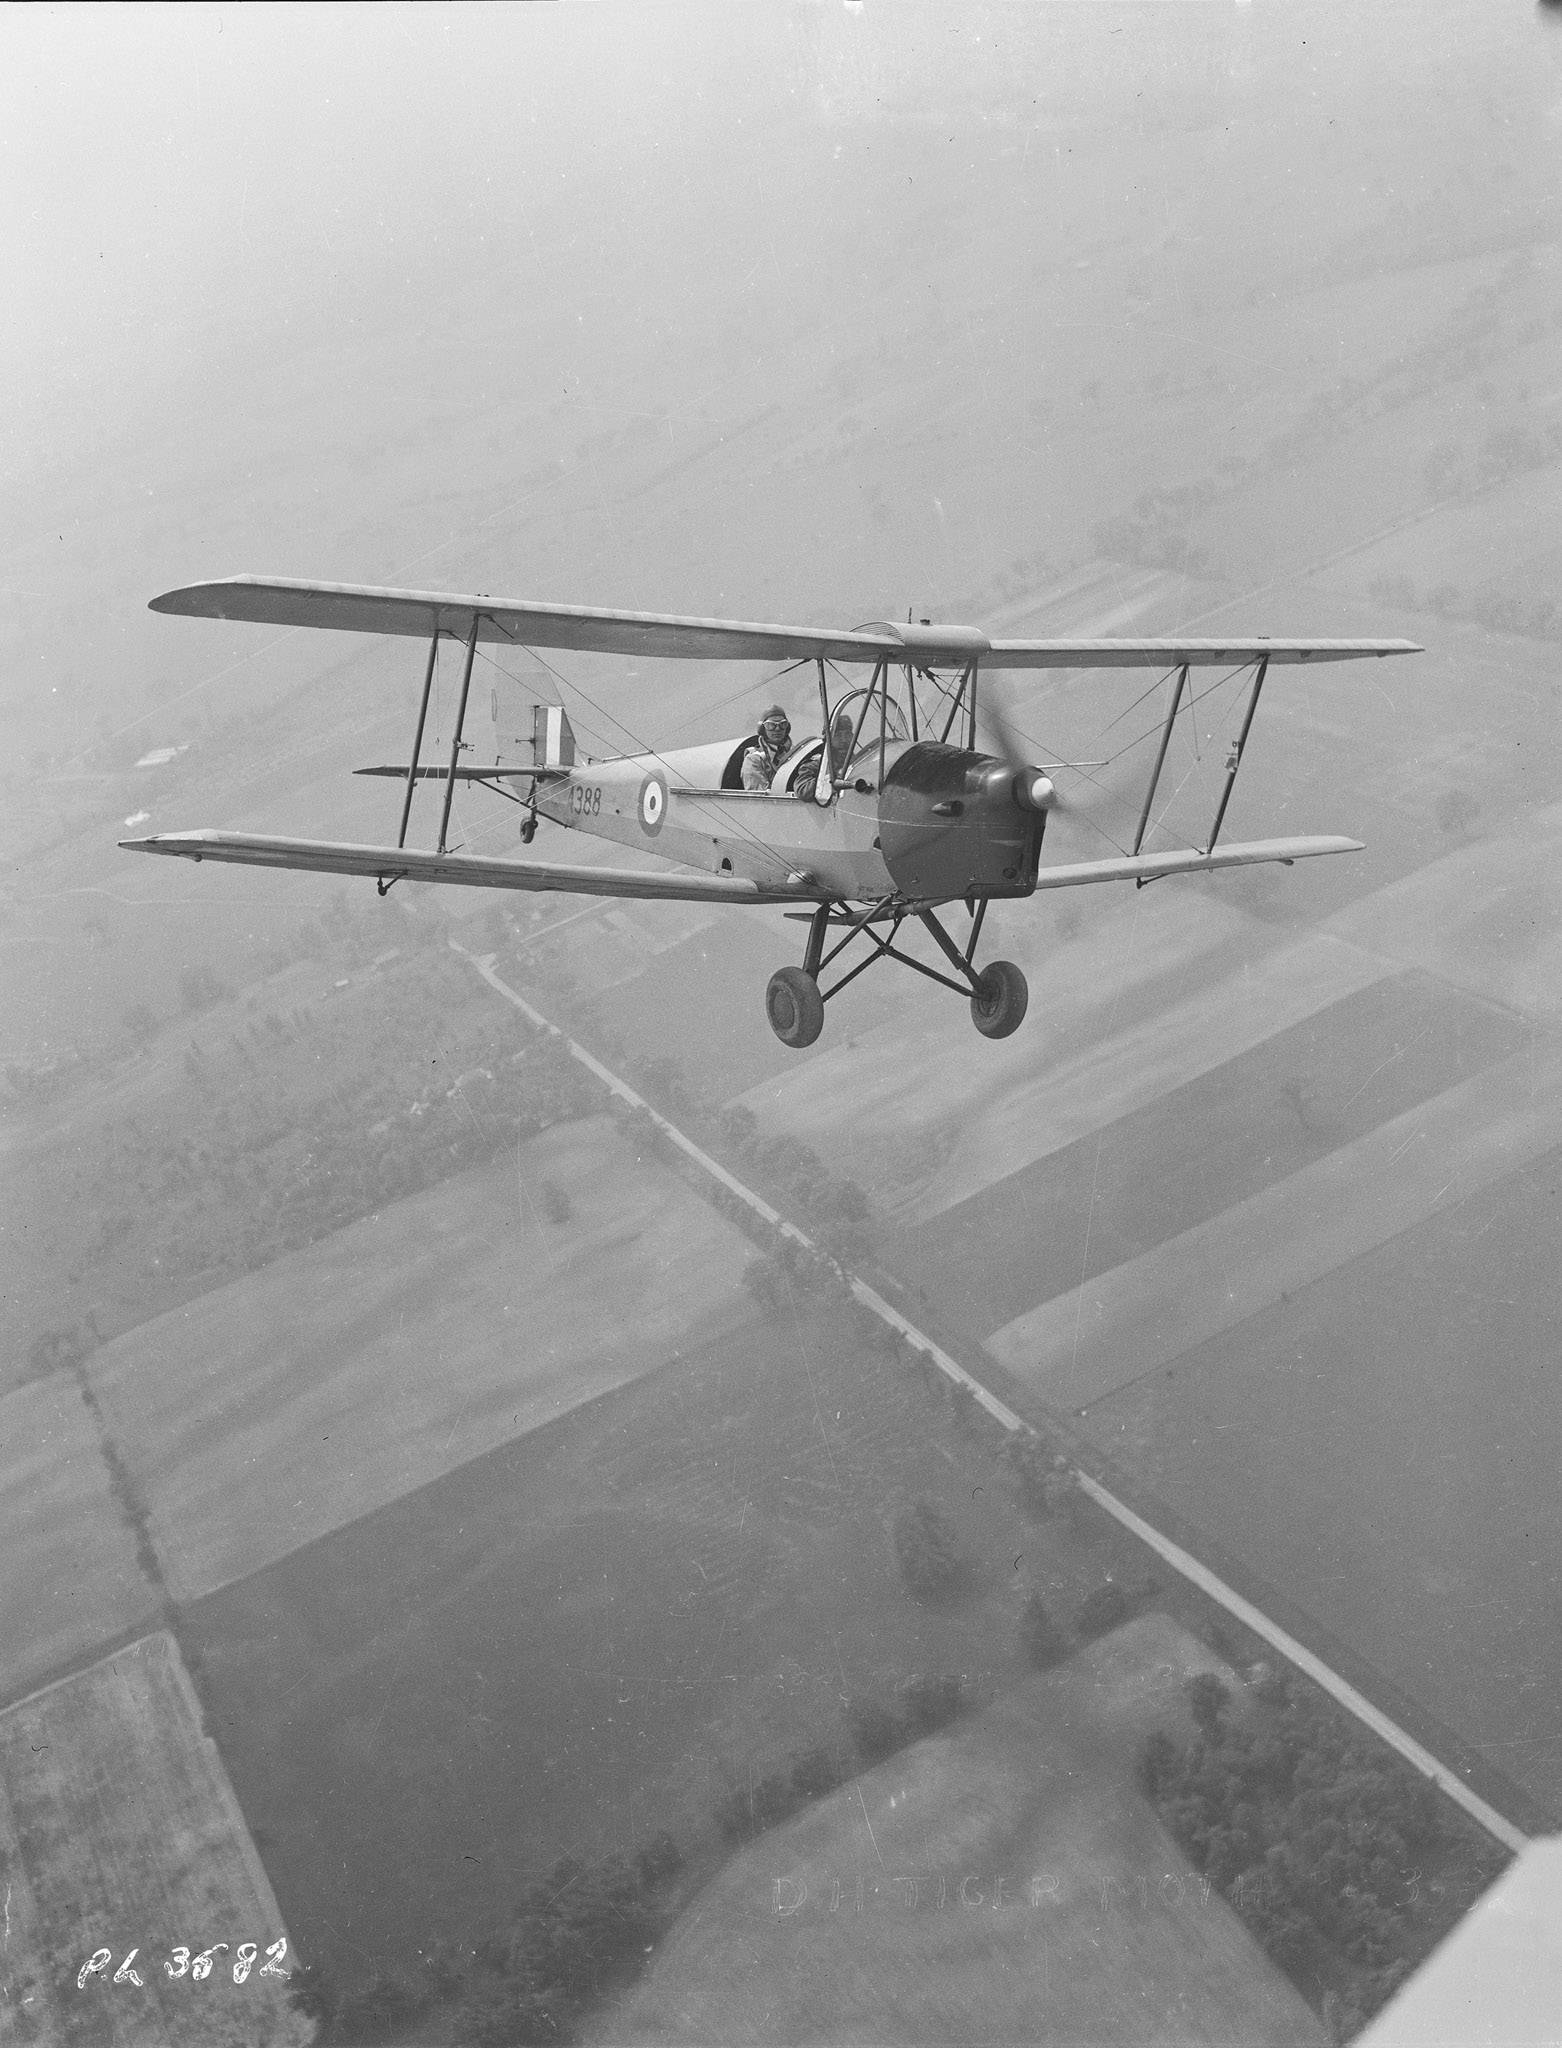 A Tiger Moth flies out of No. 1 Elementary Flight Training School at RCAF Malton, Ontario. Almost all of the pilots under the British Commonwealth Air Training Plan in Canada began their flight training on Tiger Moths. PHOTO: DND Archives, PL-3582